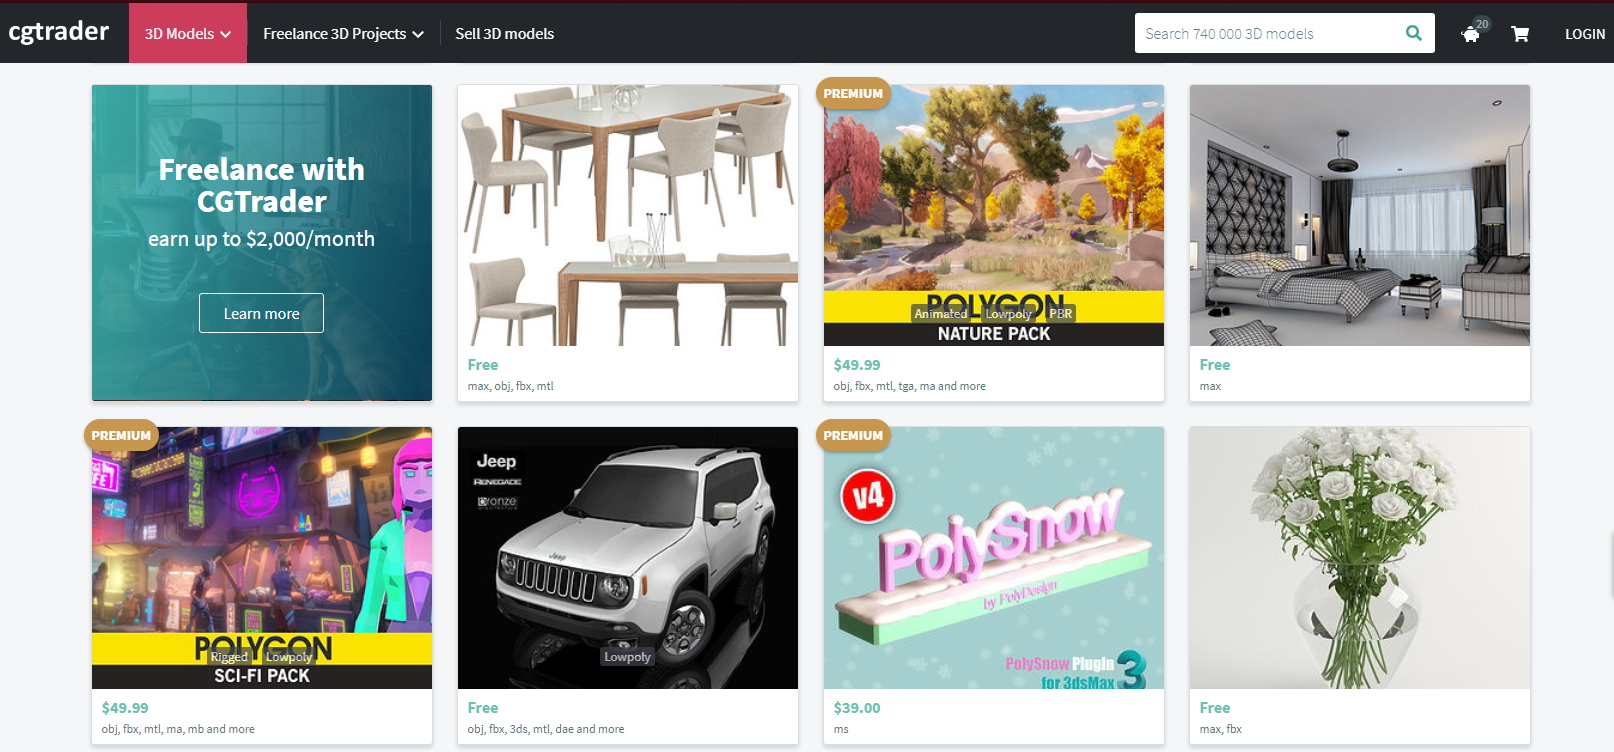 Top 5 Sites To Download Free 3D/CGI Models | eArtisan